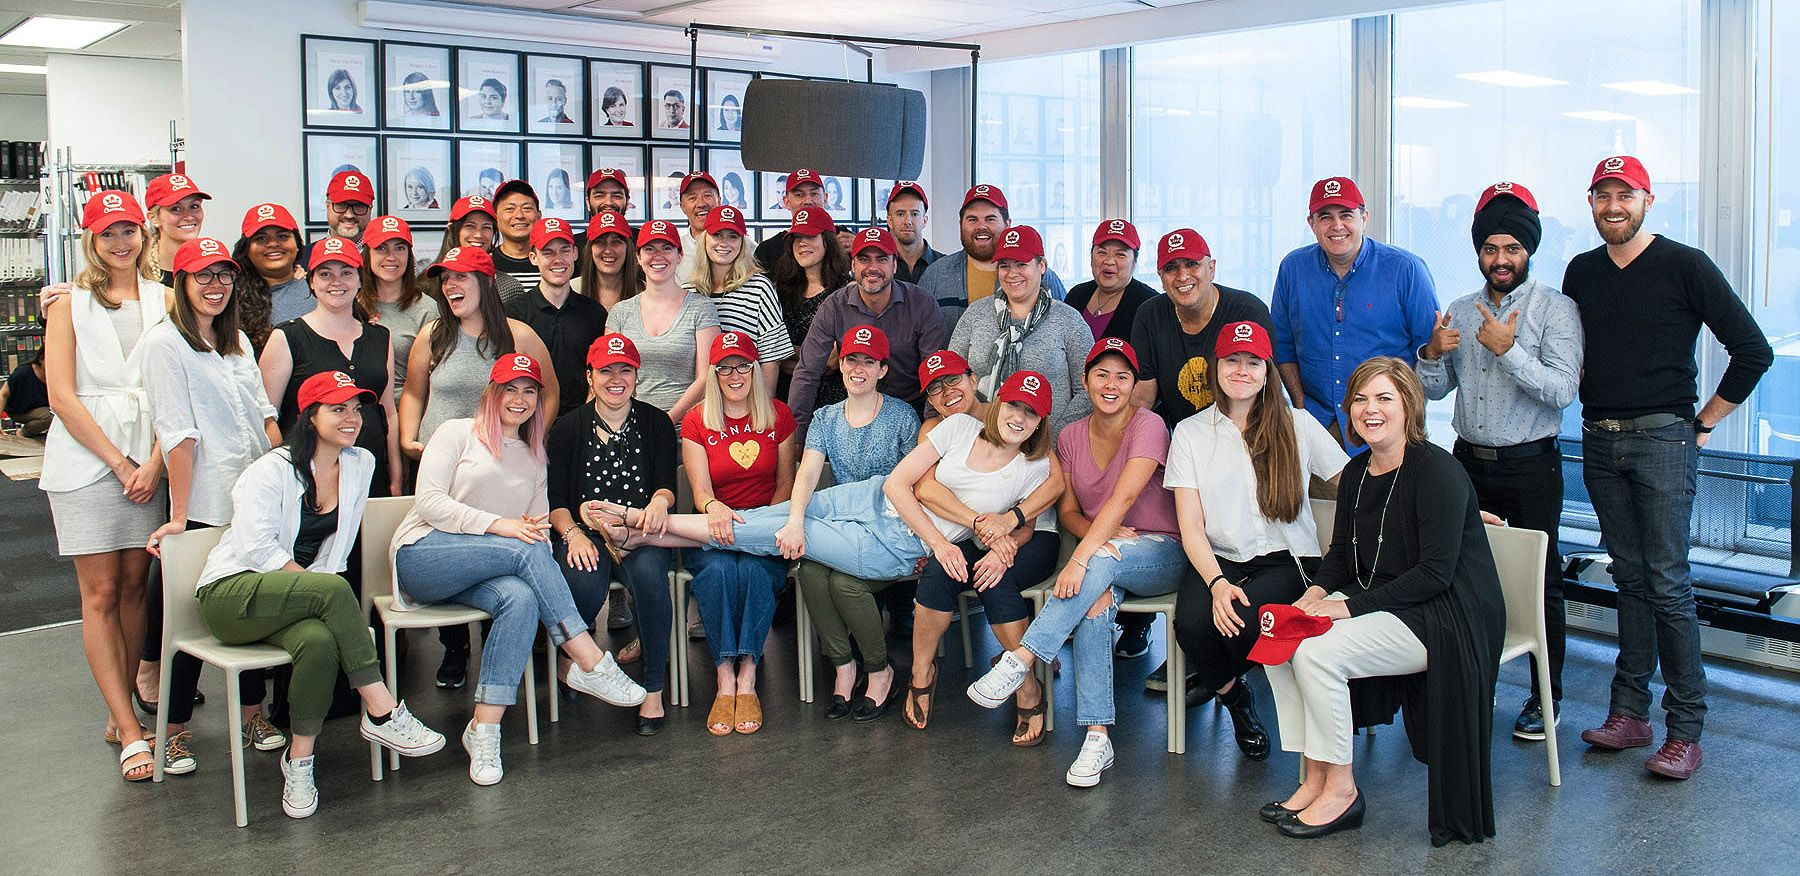 The Gang At Figure3 Interior Design With Their Vifloor Canada 150 Hats